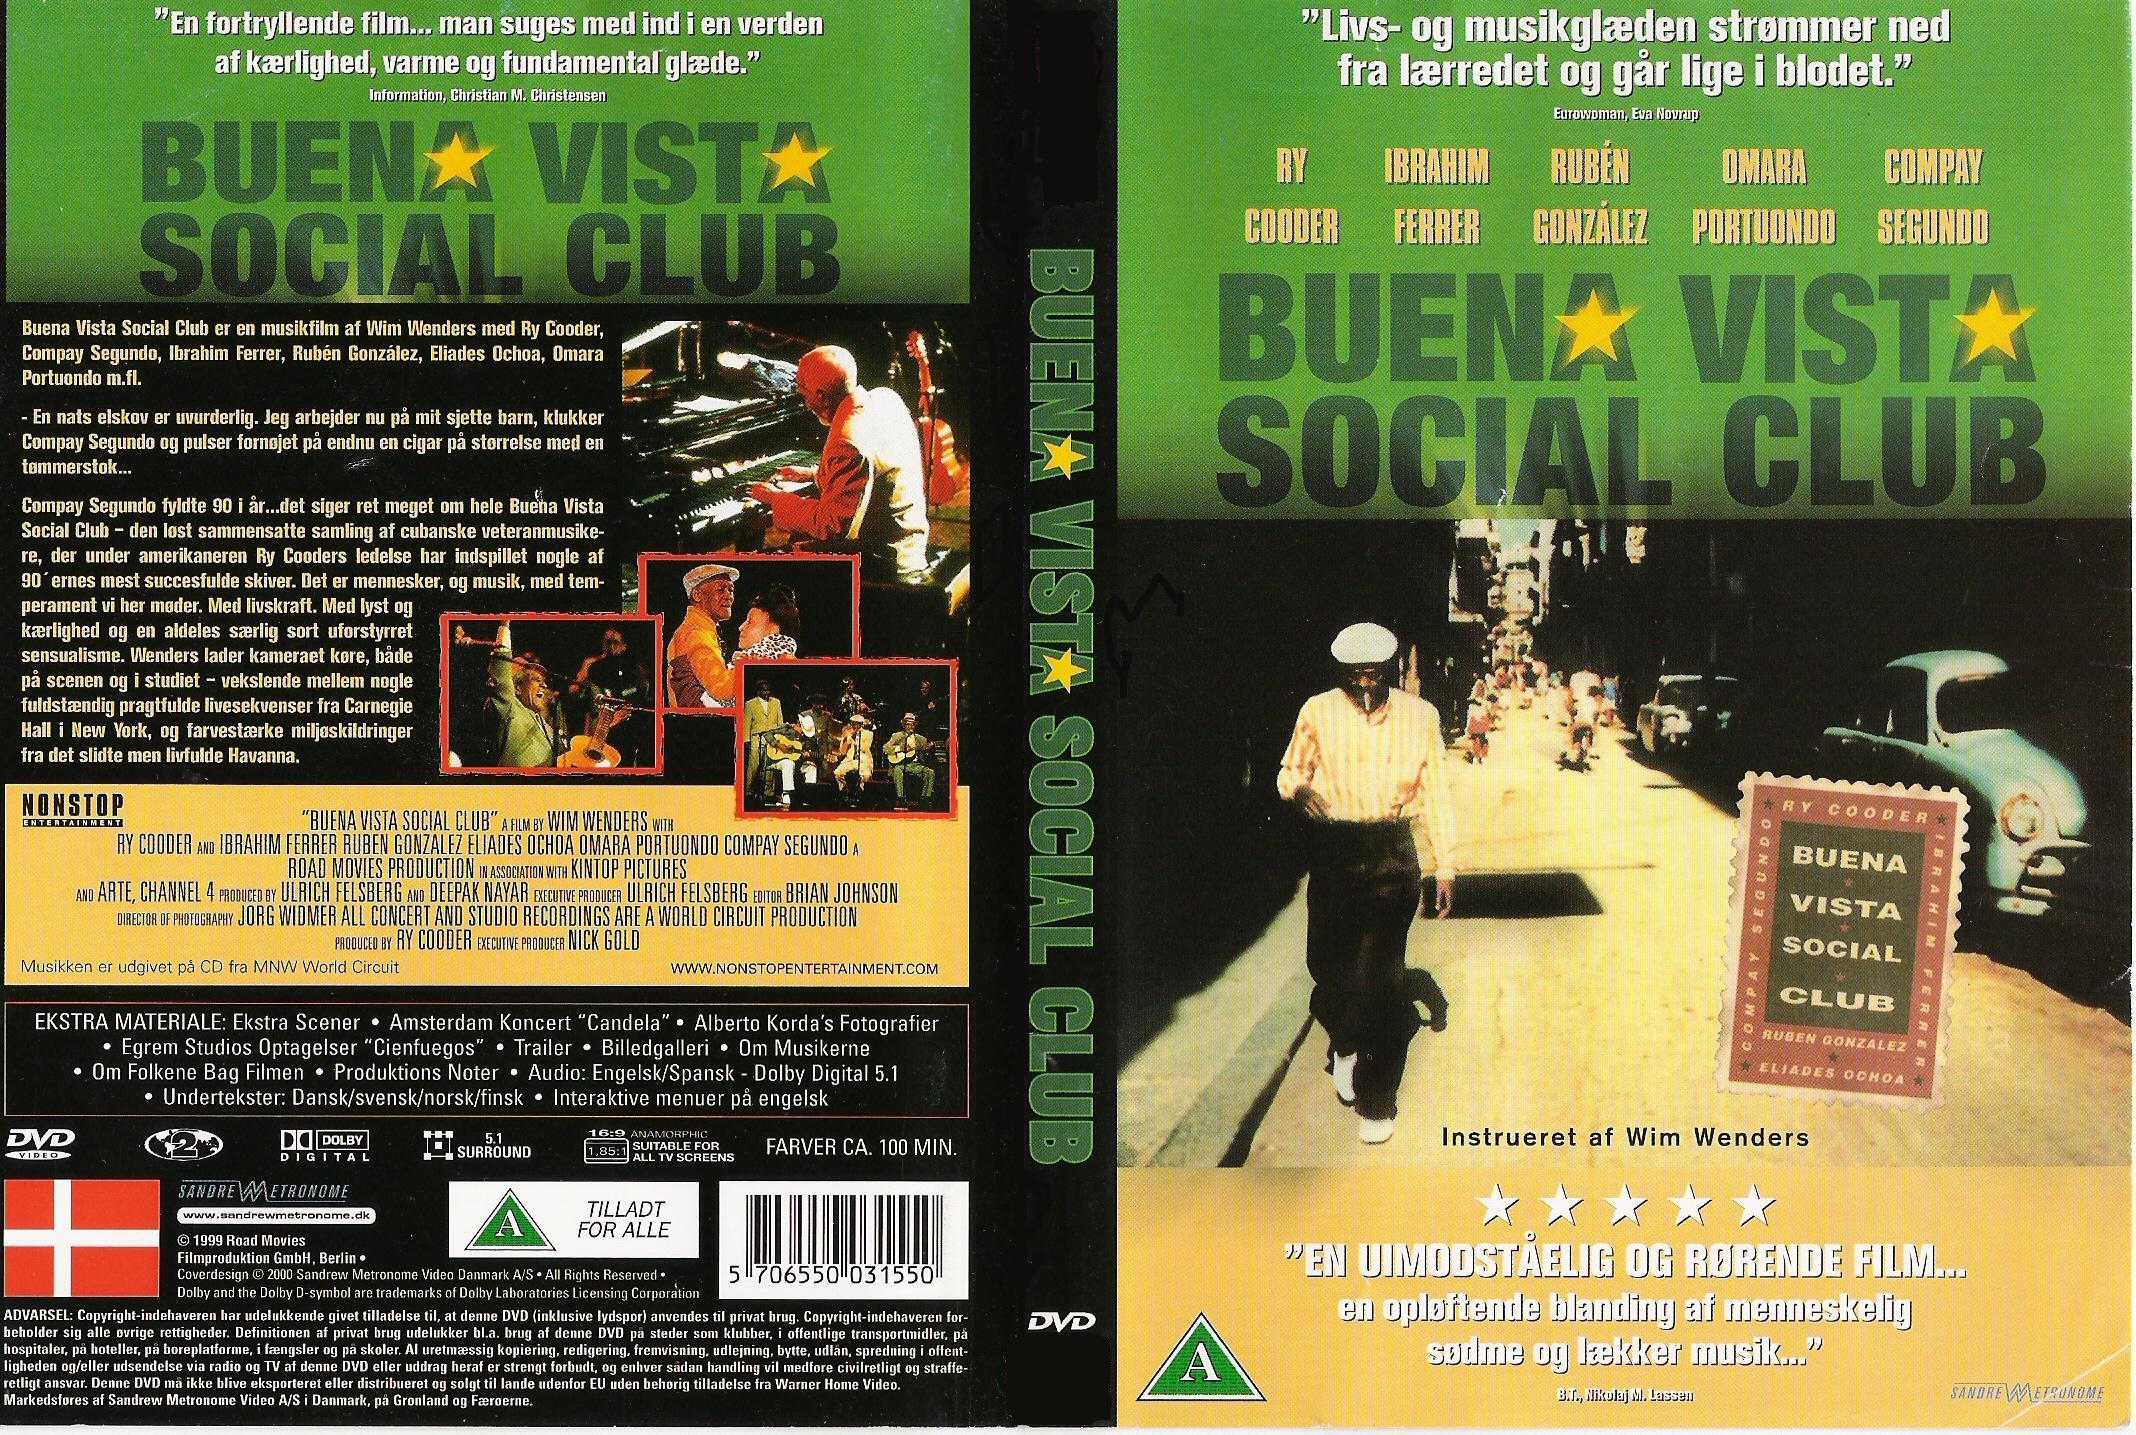 Covers Box Sk Buena Vista Social Club 1999 High Quality Dvd Blueray Movie